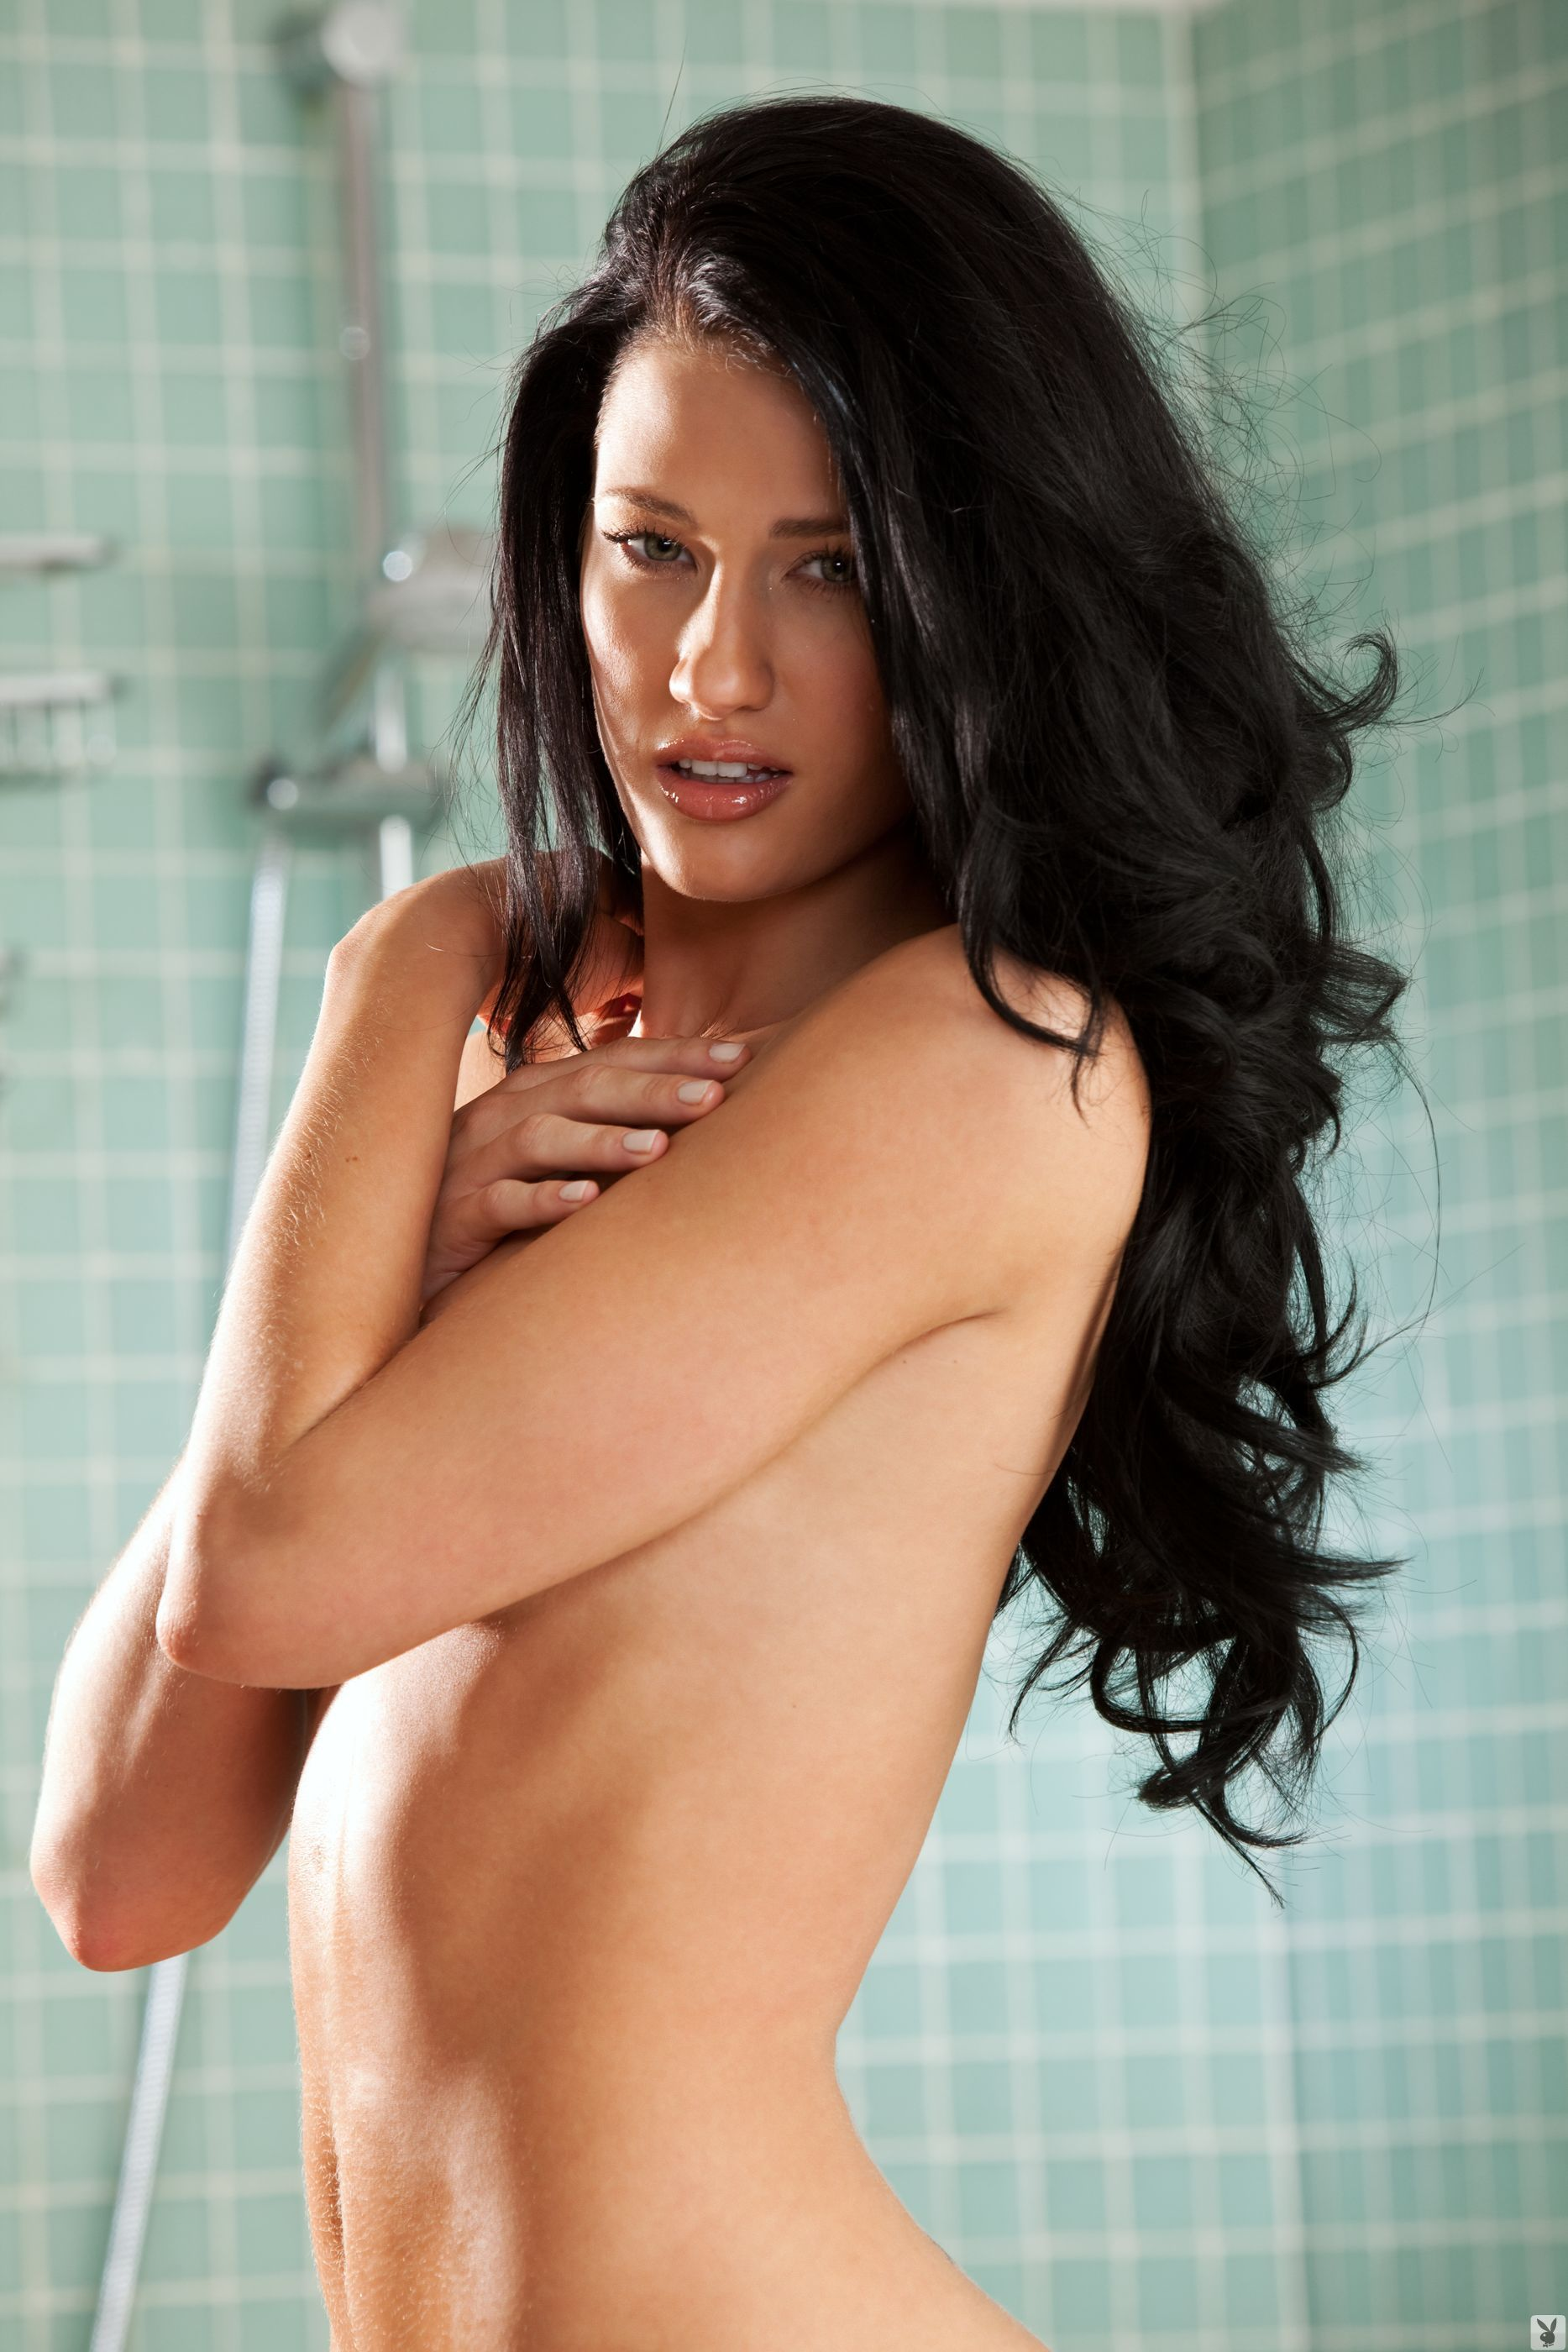 ashton-winters-brunette-nude-bathroom-playboy-04